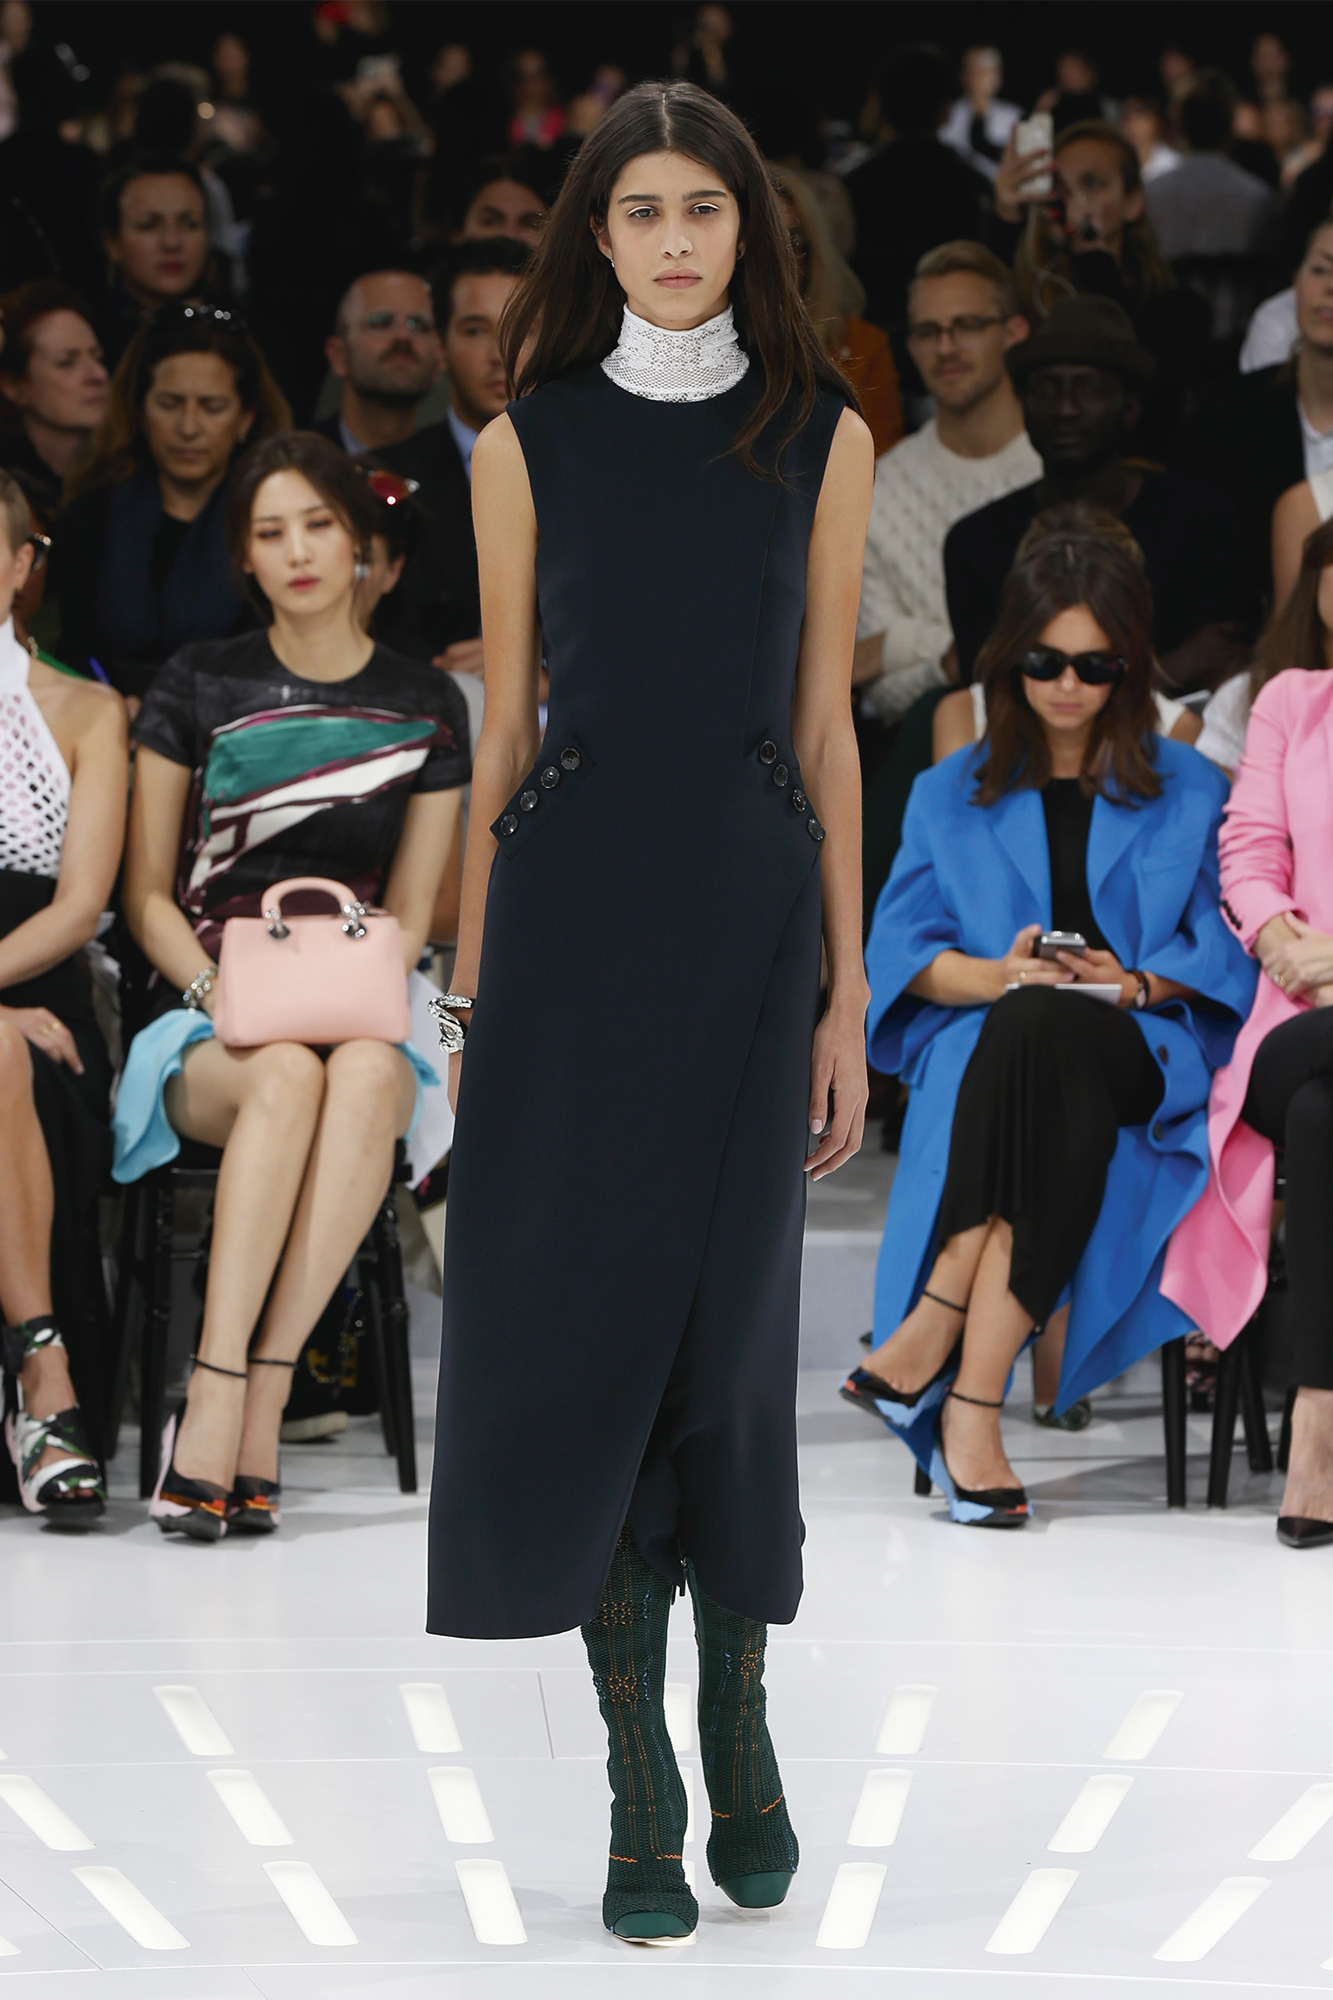 Christian Dior Haute Couture Spring-Summer Ready To Wear Dresses & Accessories Collection 2015-16 (30)